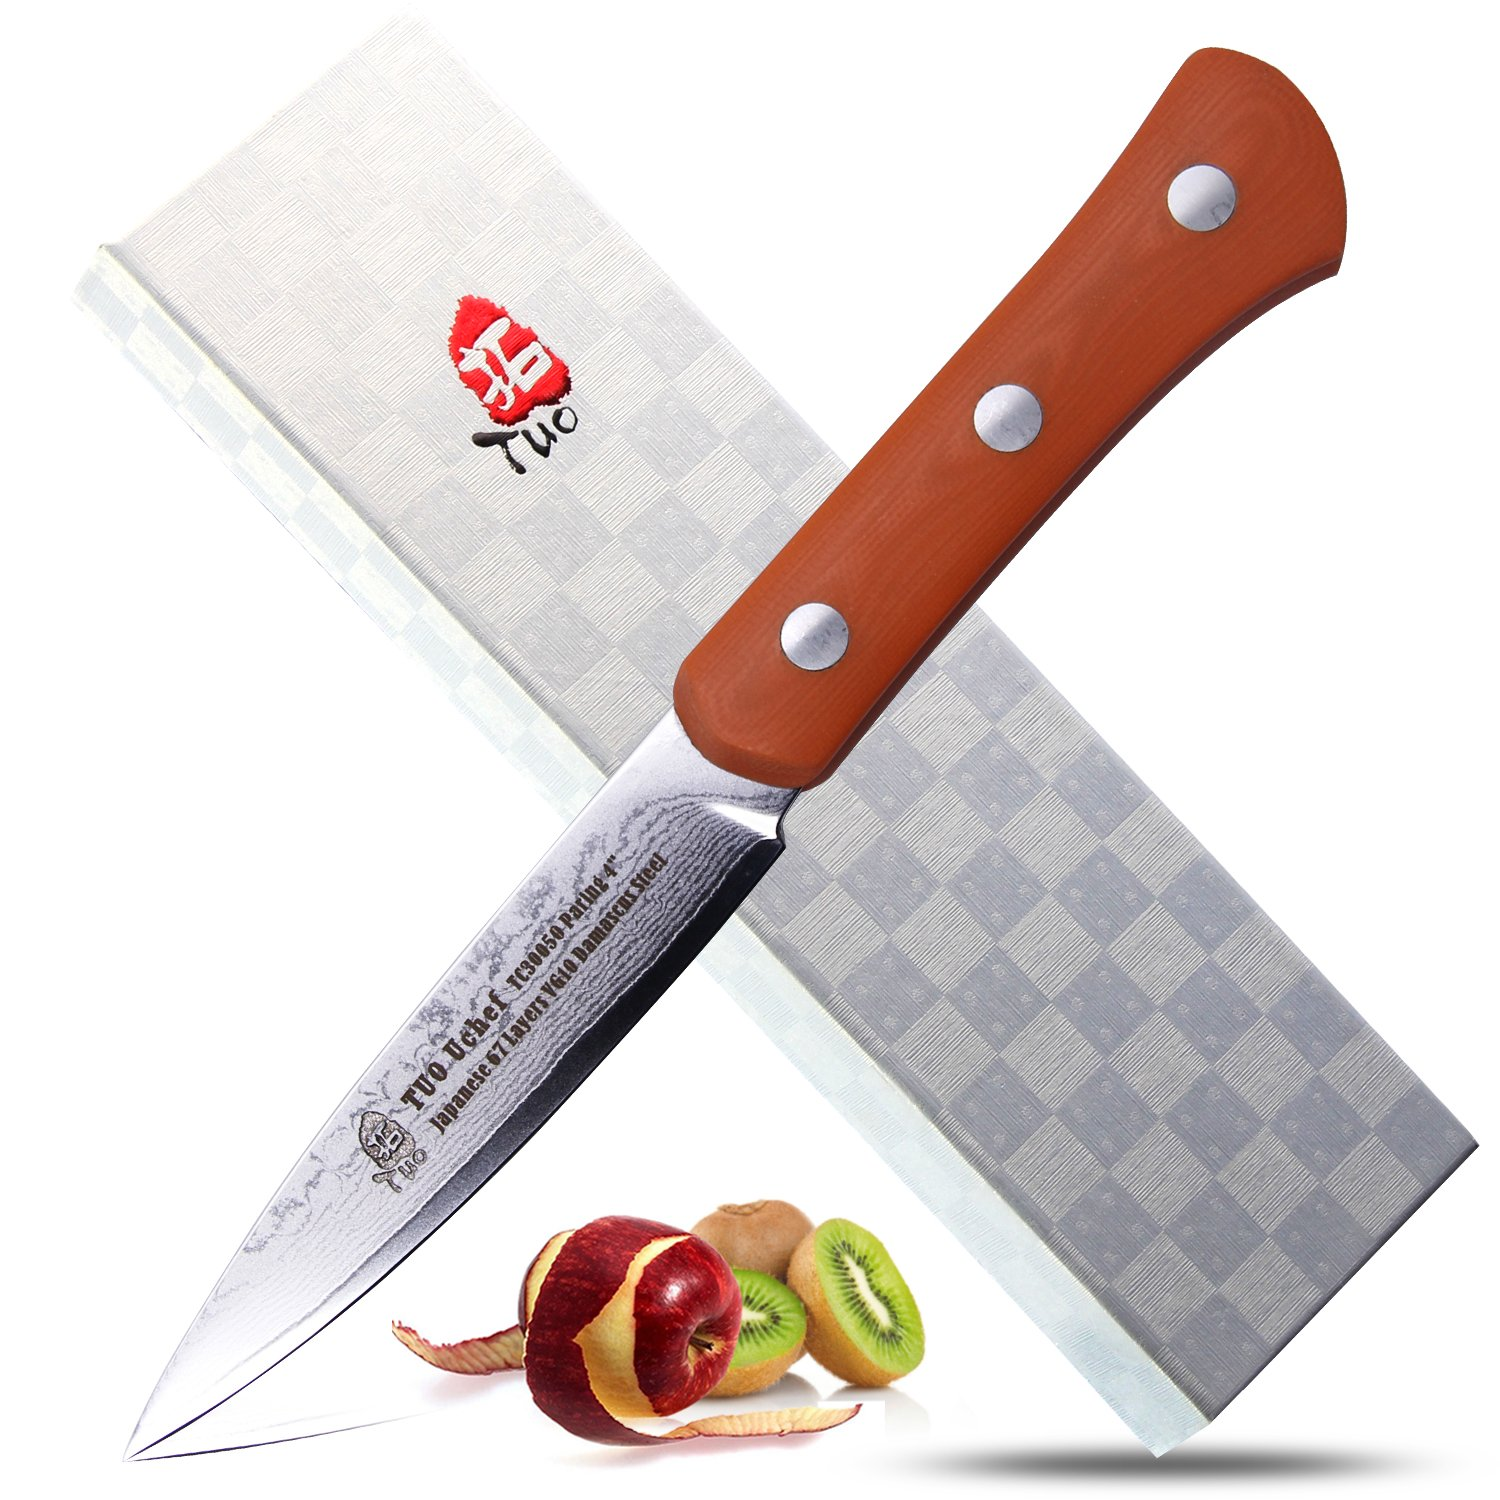 TUO Cutlery TC3005O Uchef 3.5'' Damascus Paring Knife